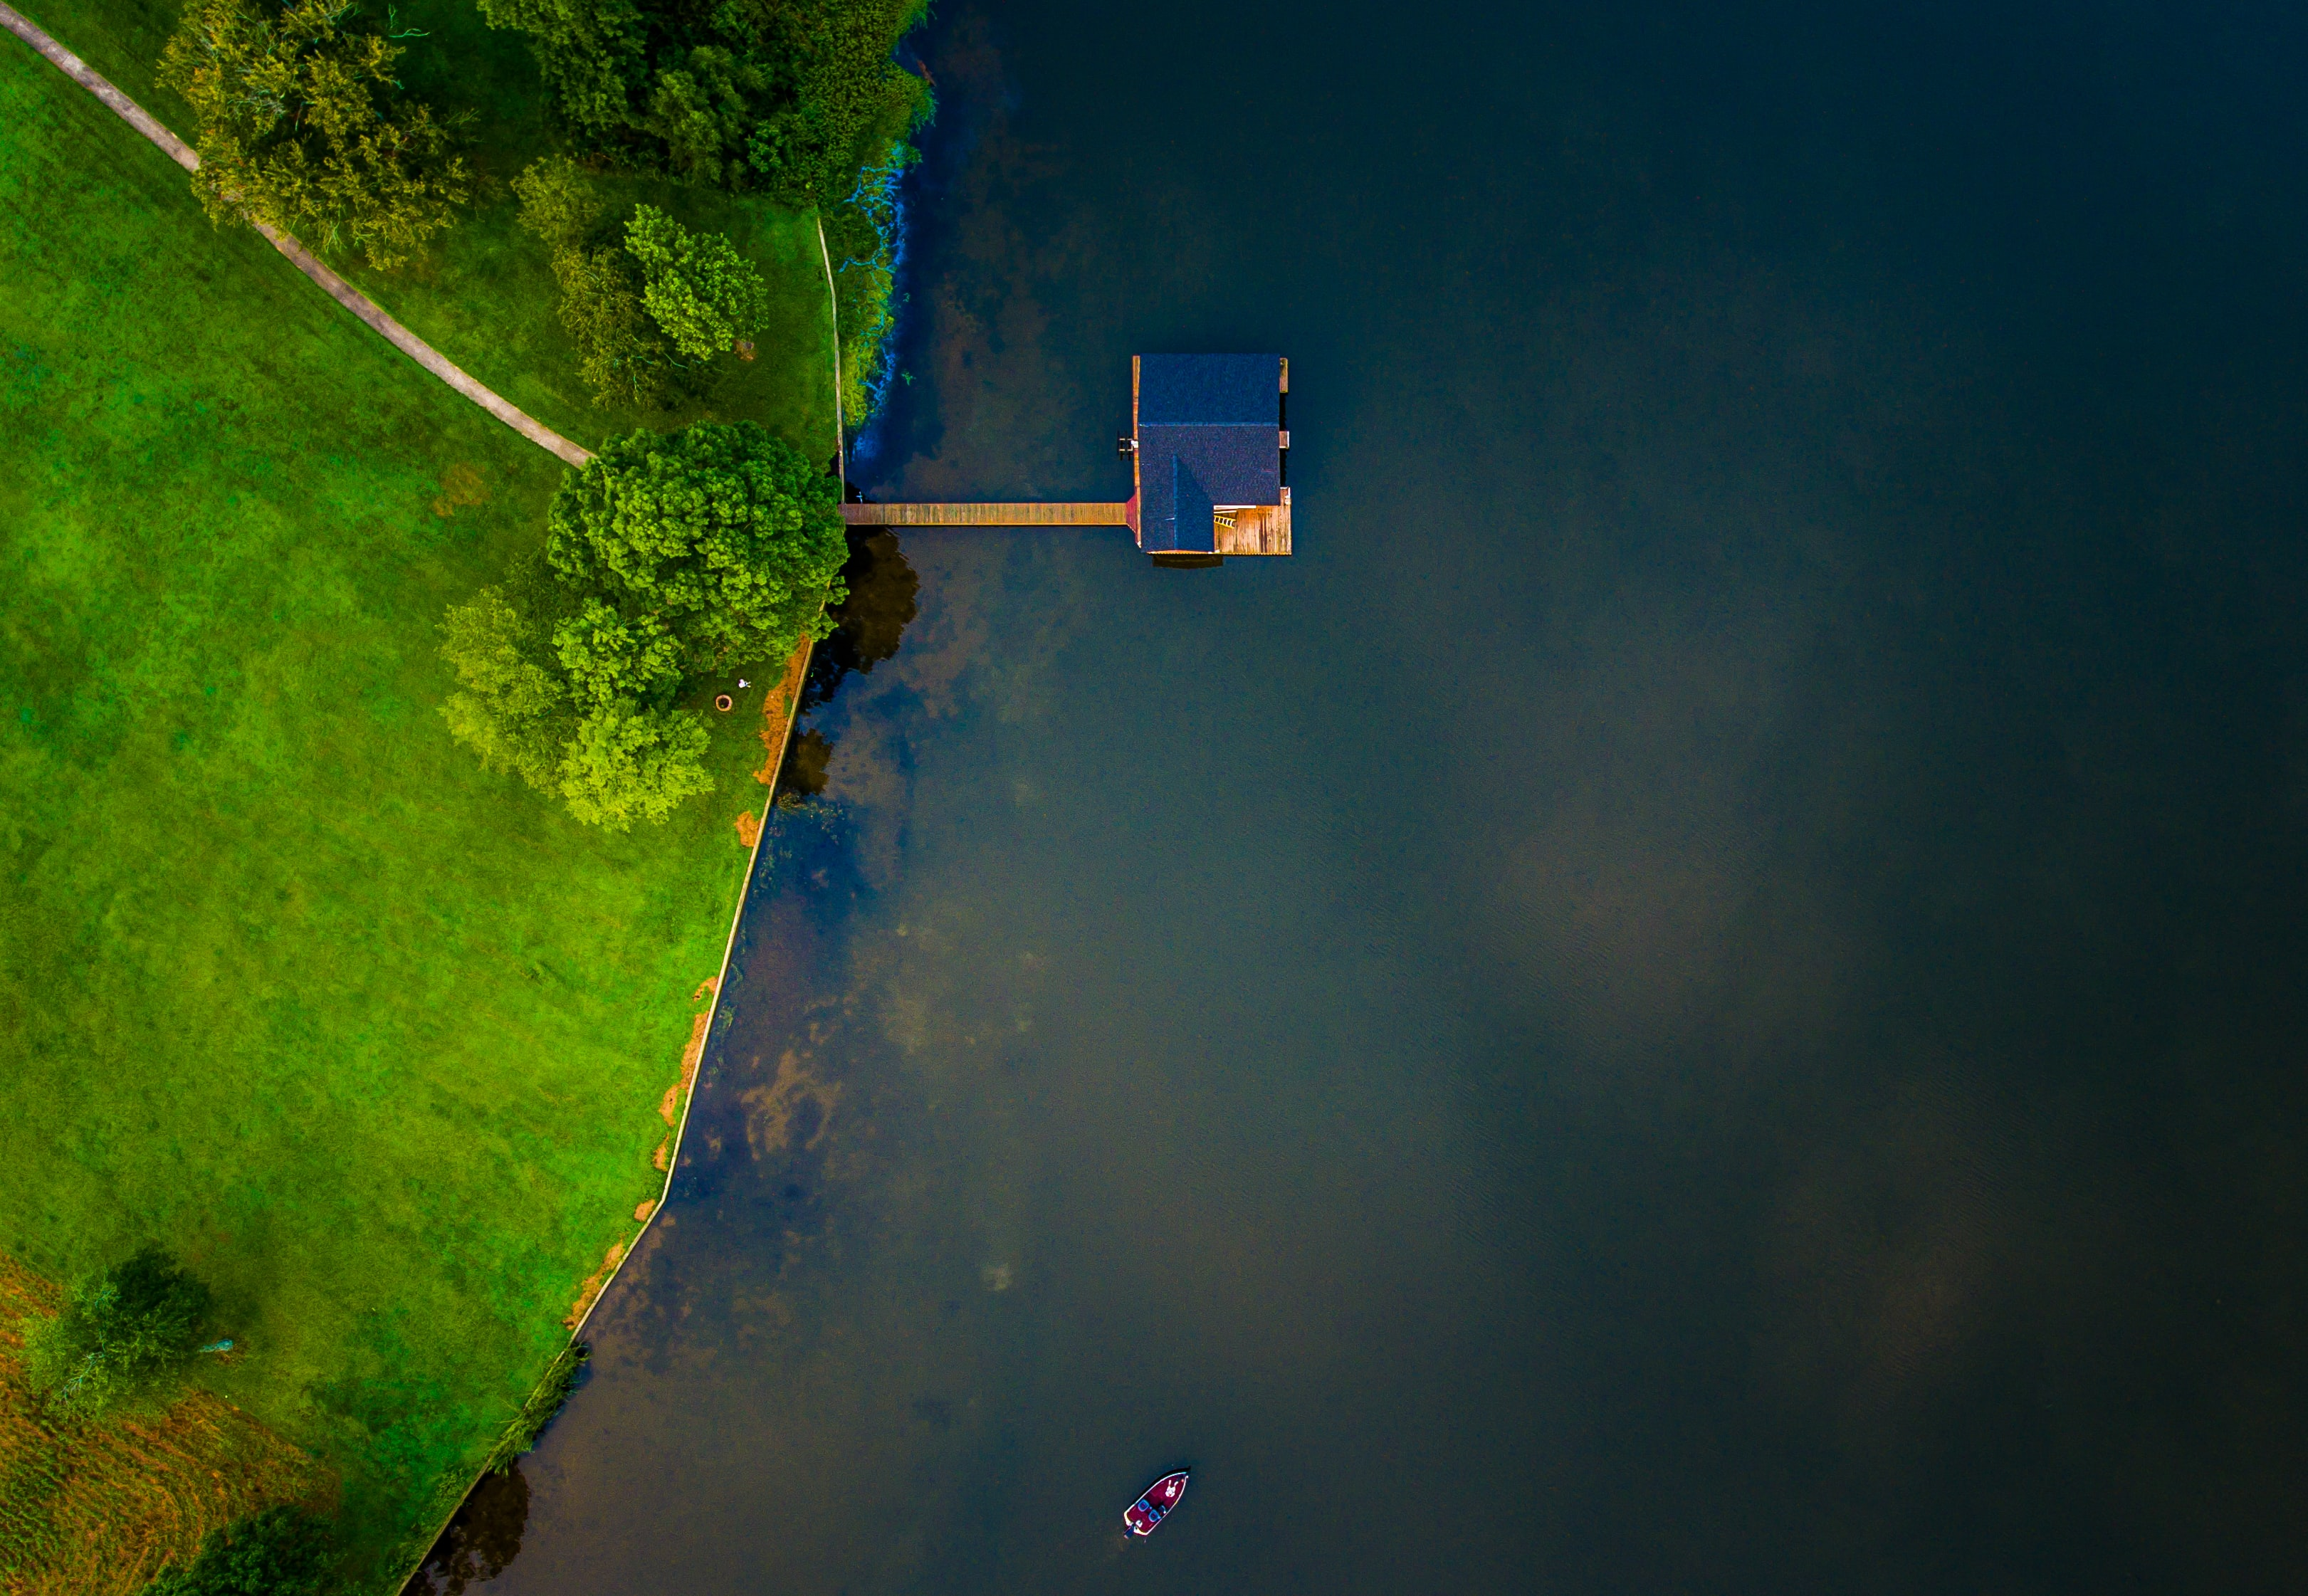 bird's eye view of blue wooden house on body of water near trees